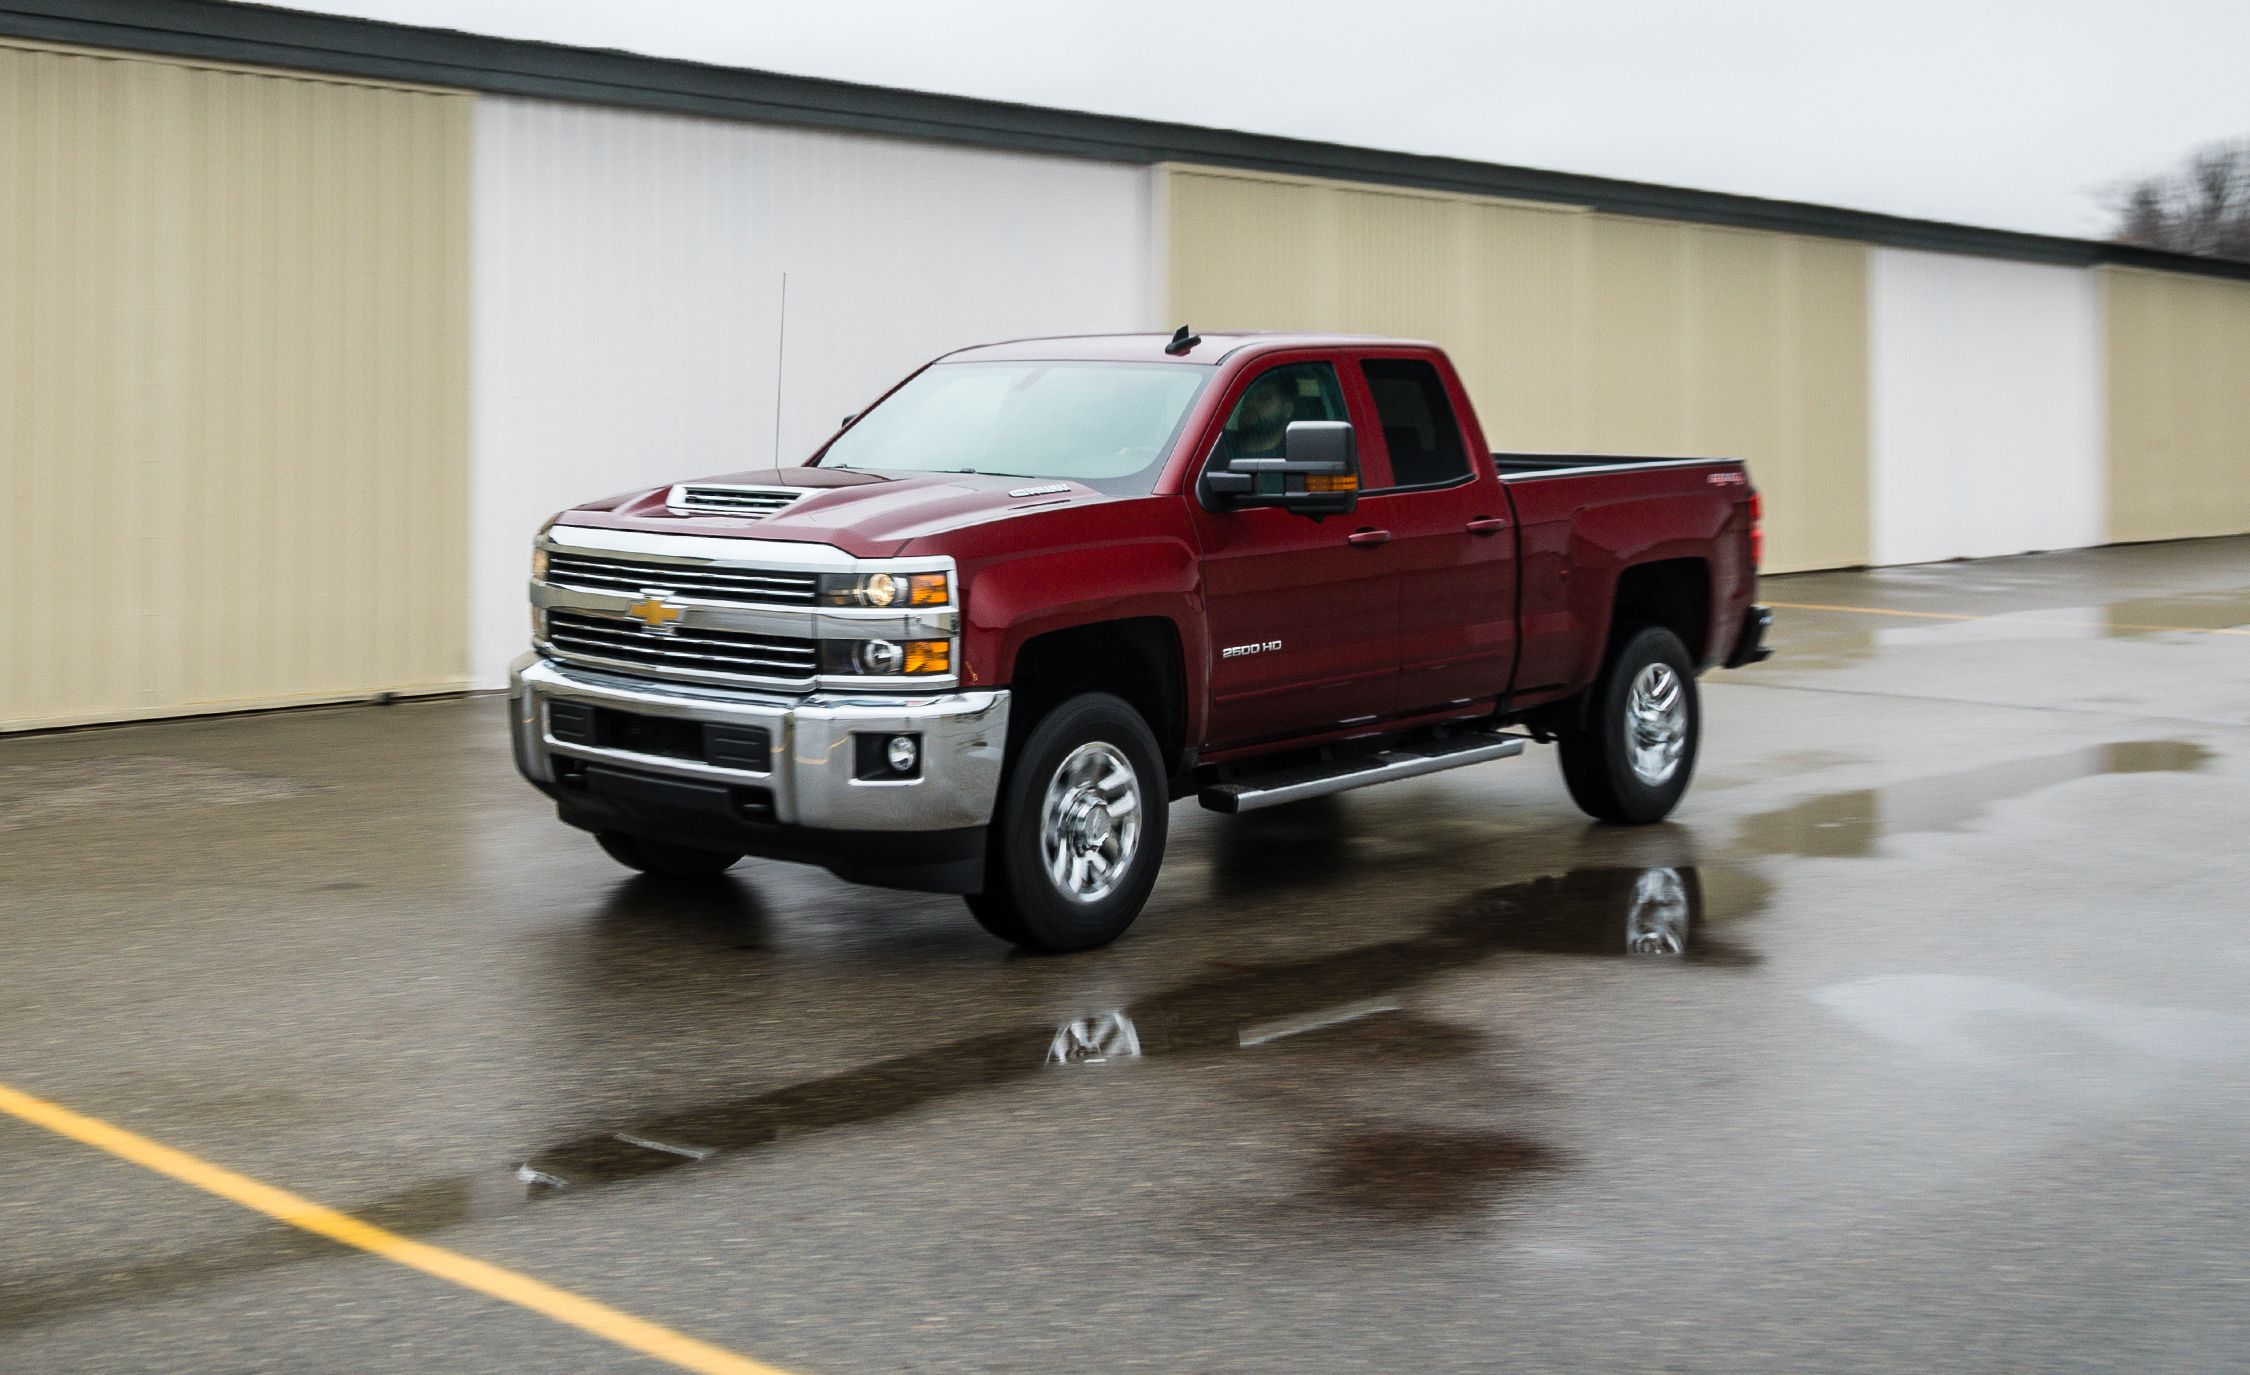 Chevrolet Silverado 2500HD Reviews | Chevrolet Silverado ...